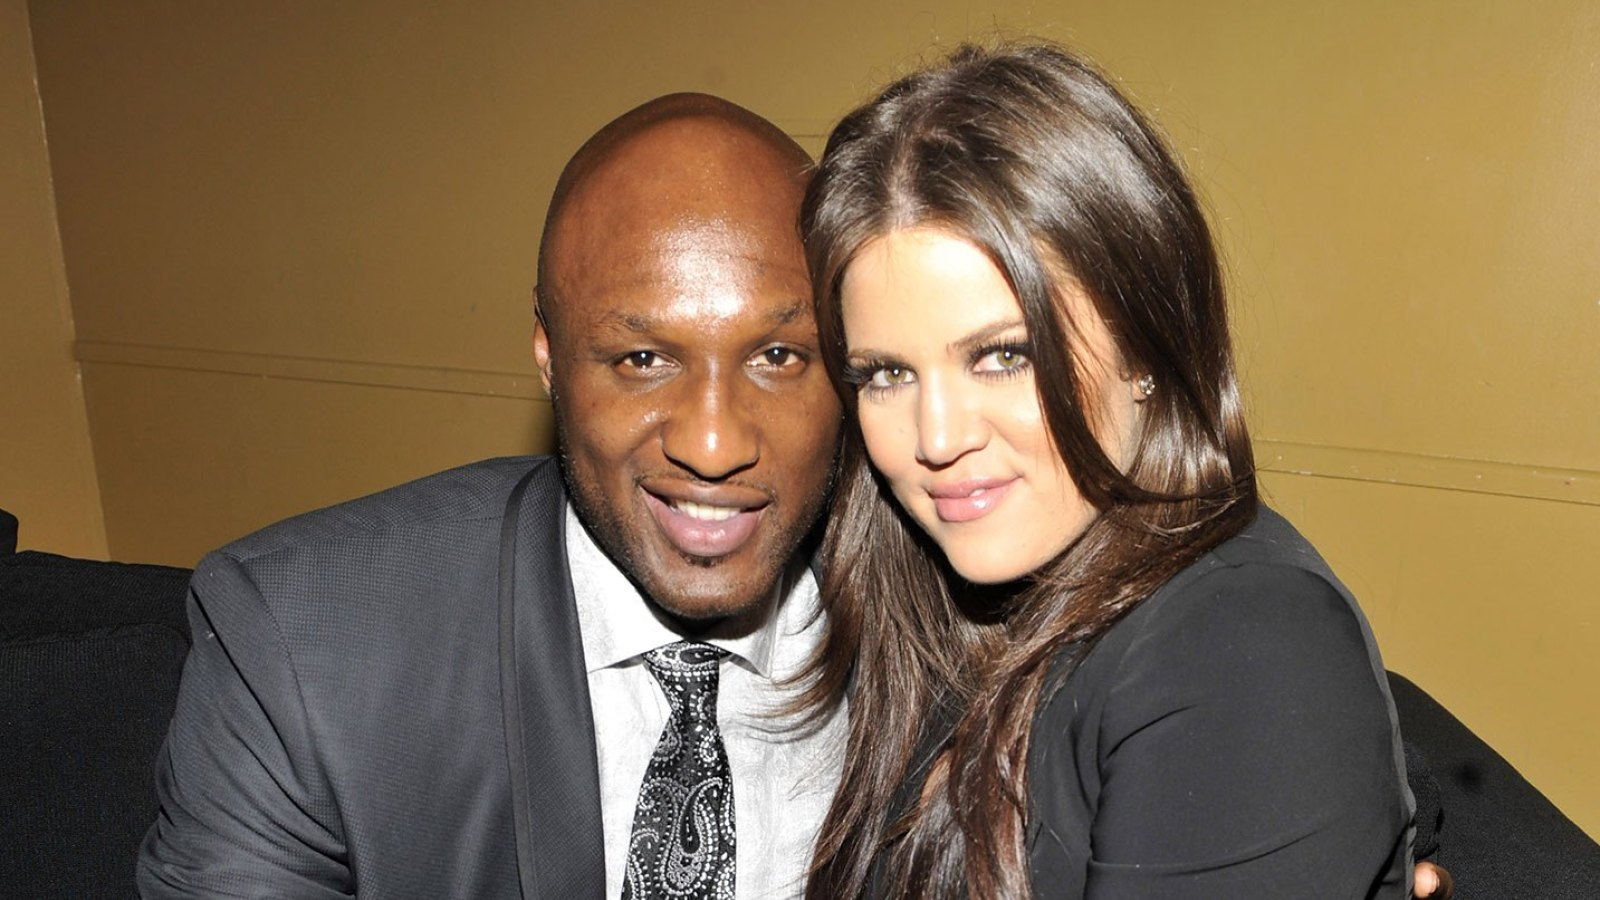 Lamar Odom threatened to kill Khloe Kardashian